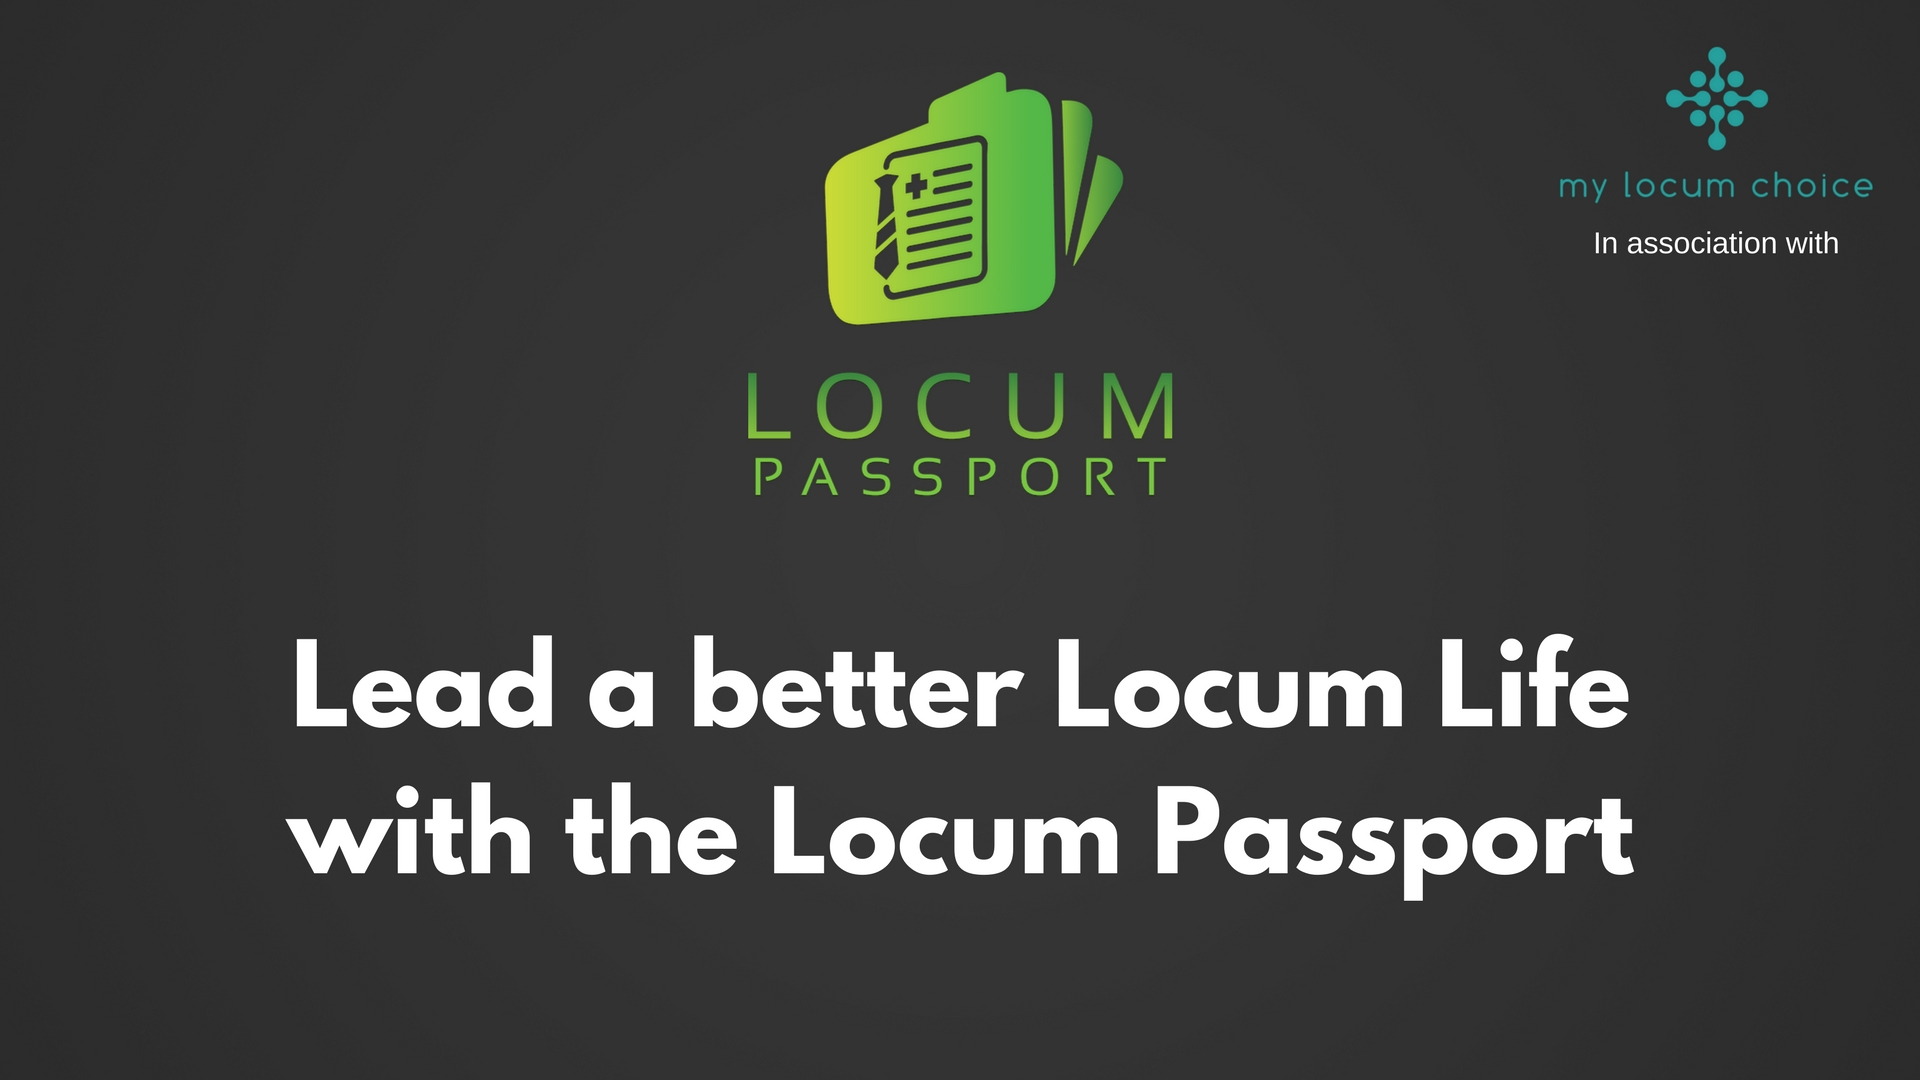 Lead a better Locum Life with the Locum Passport